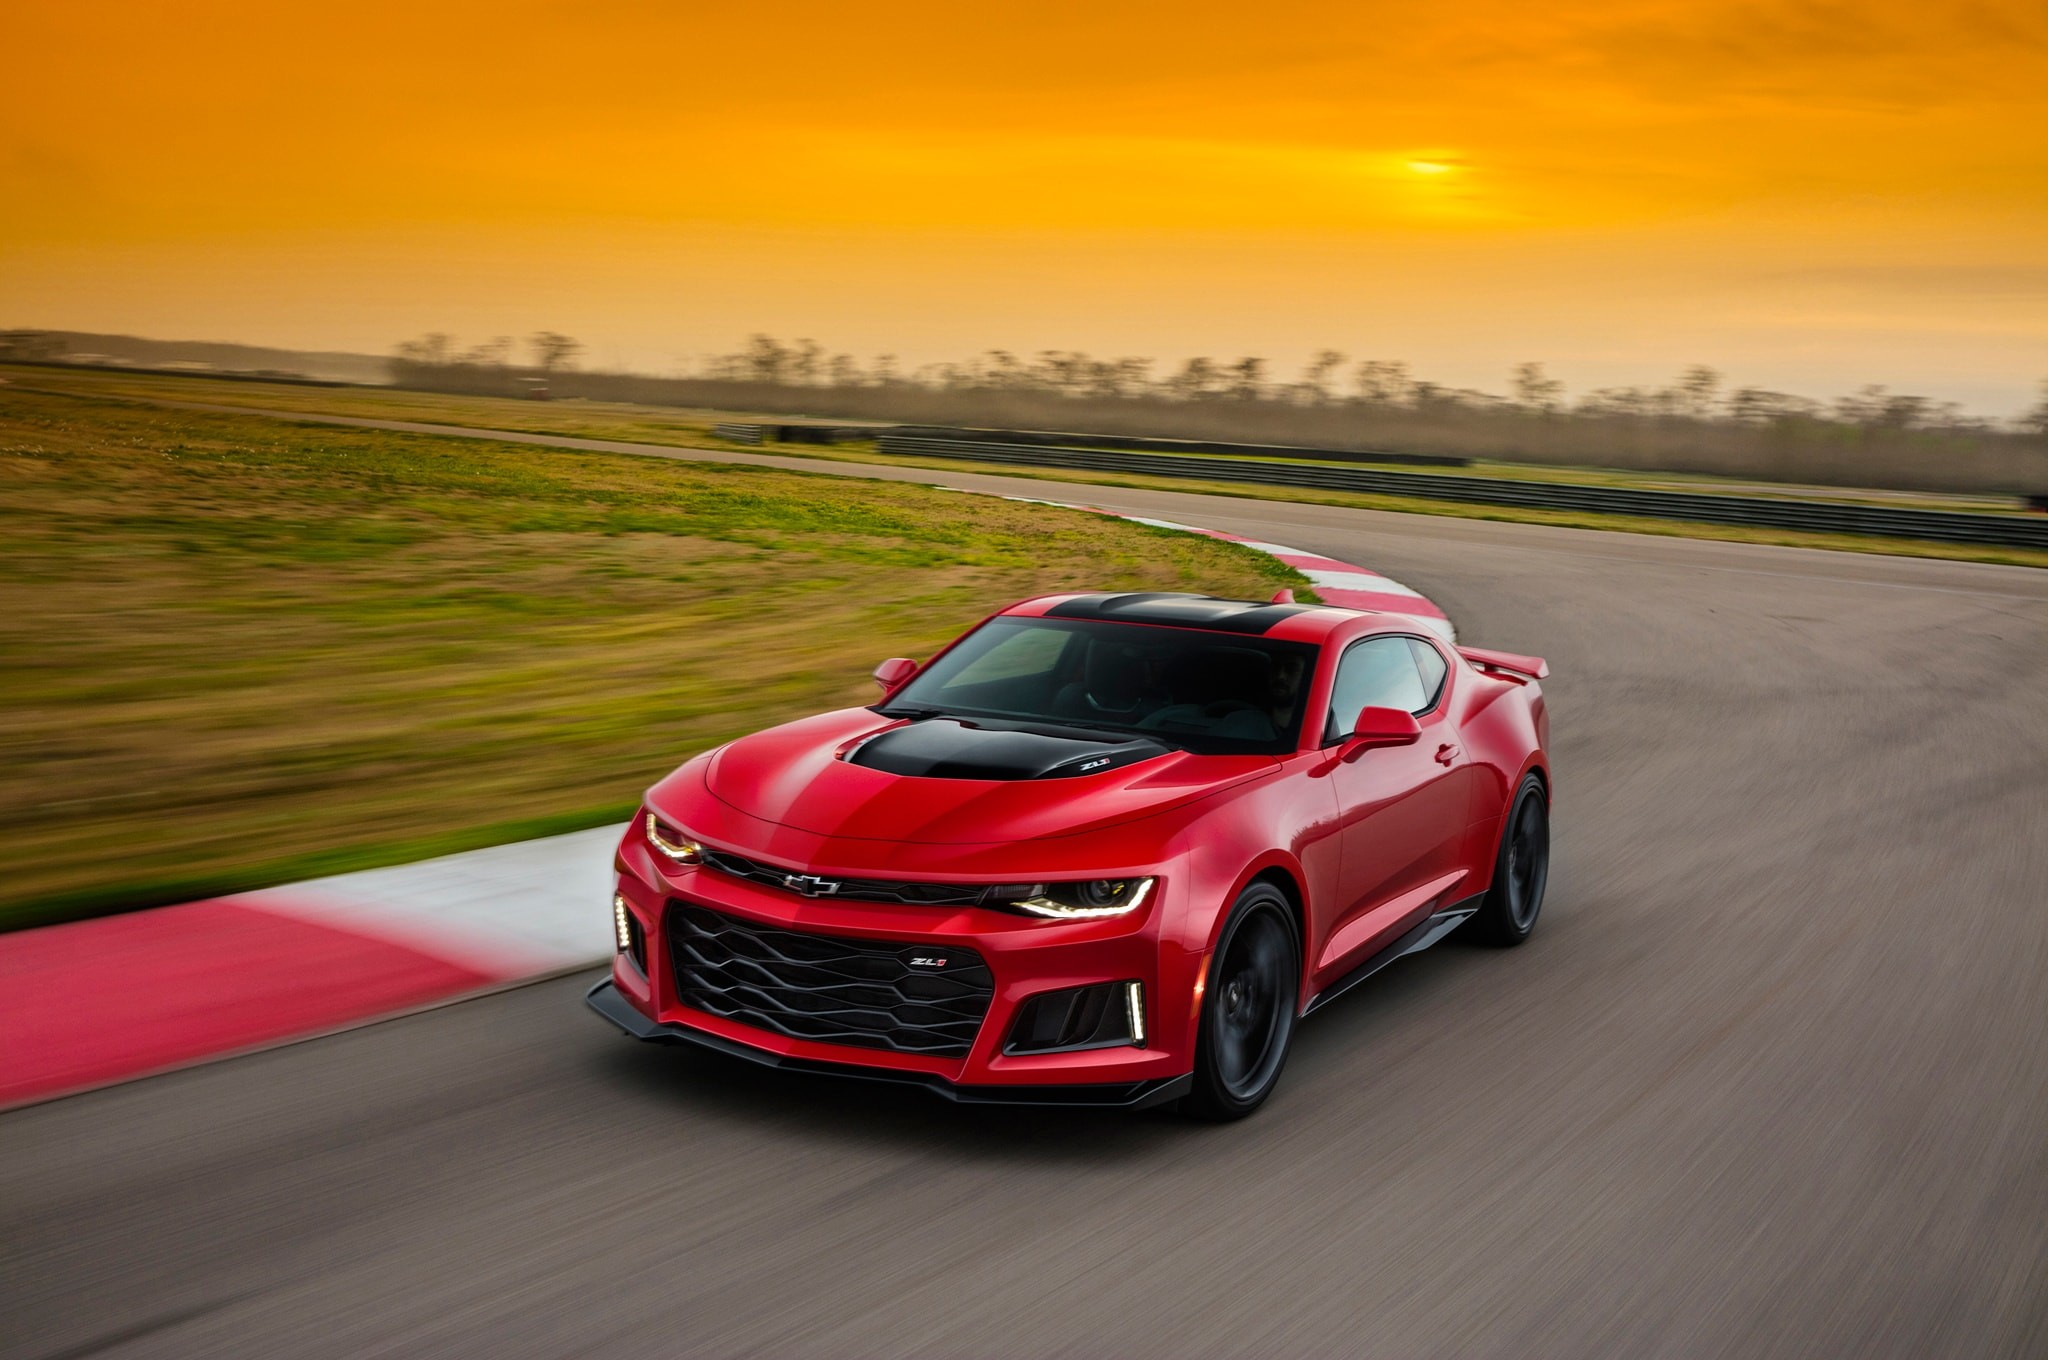 2048x1360 2016 Camaro Zl1 Wallpapers - Wallpaper Cave ...